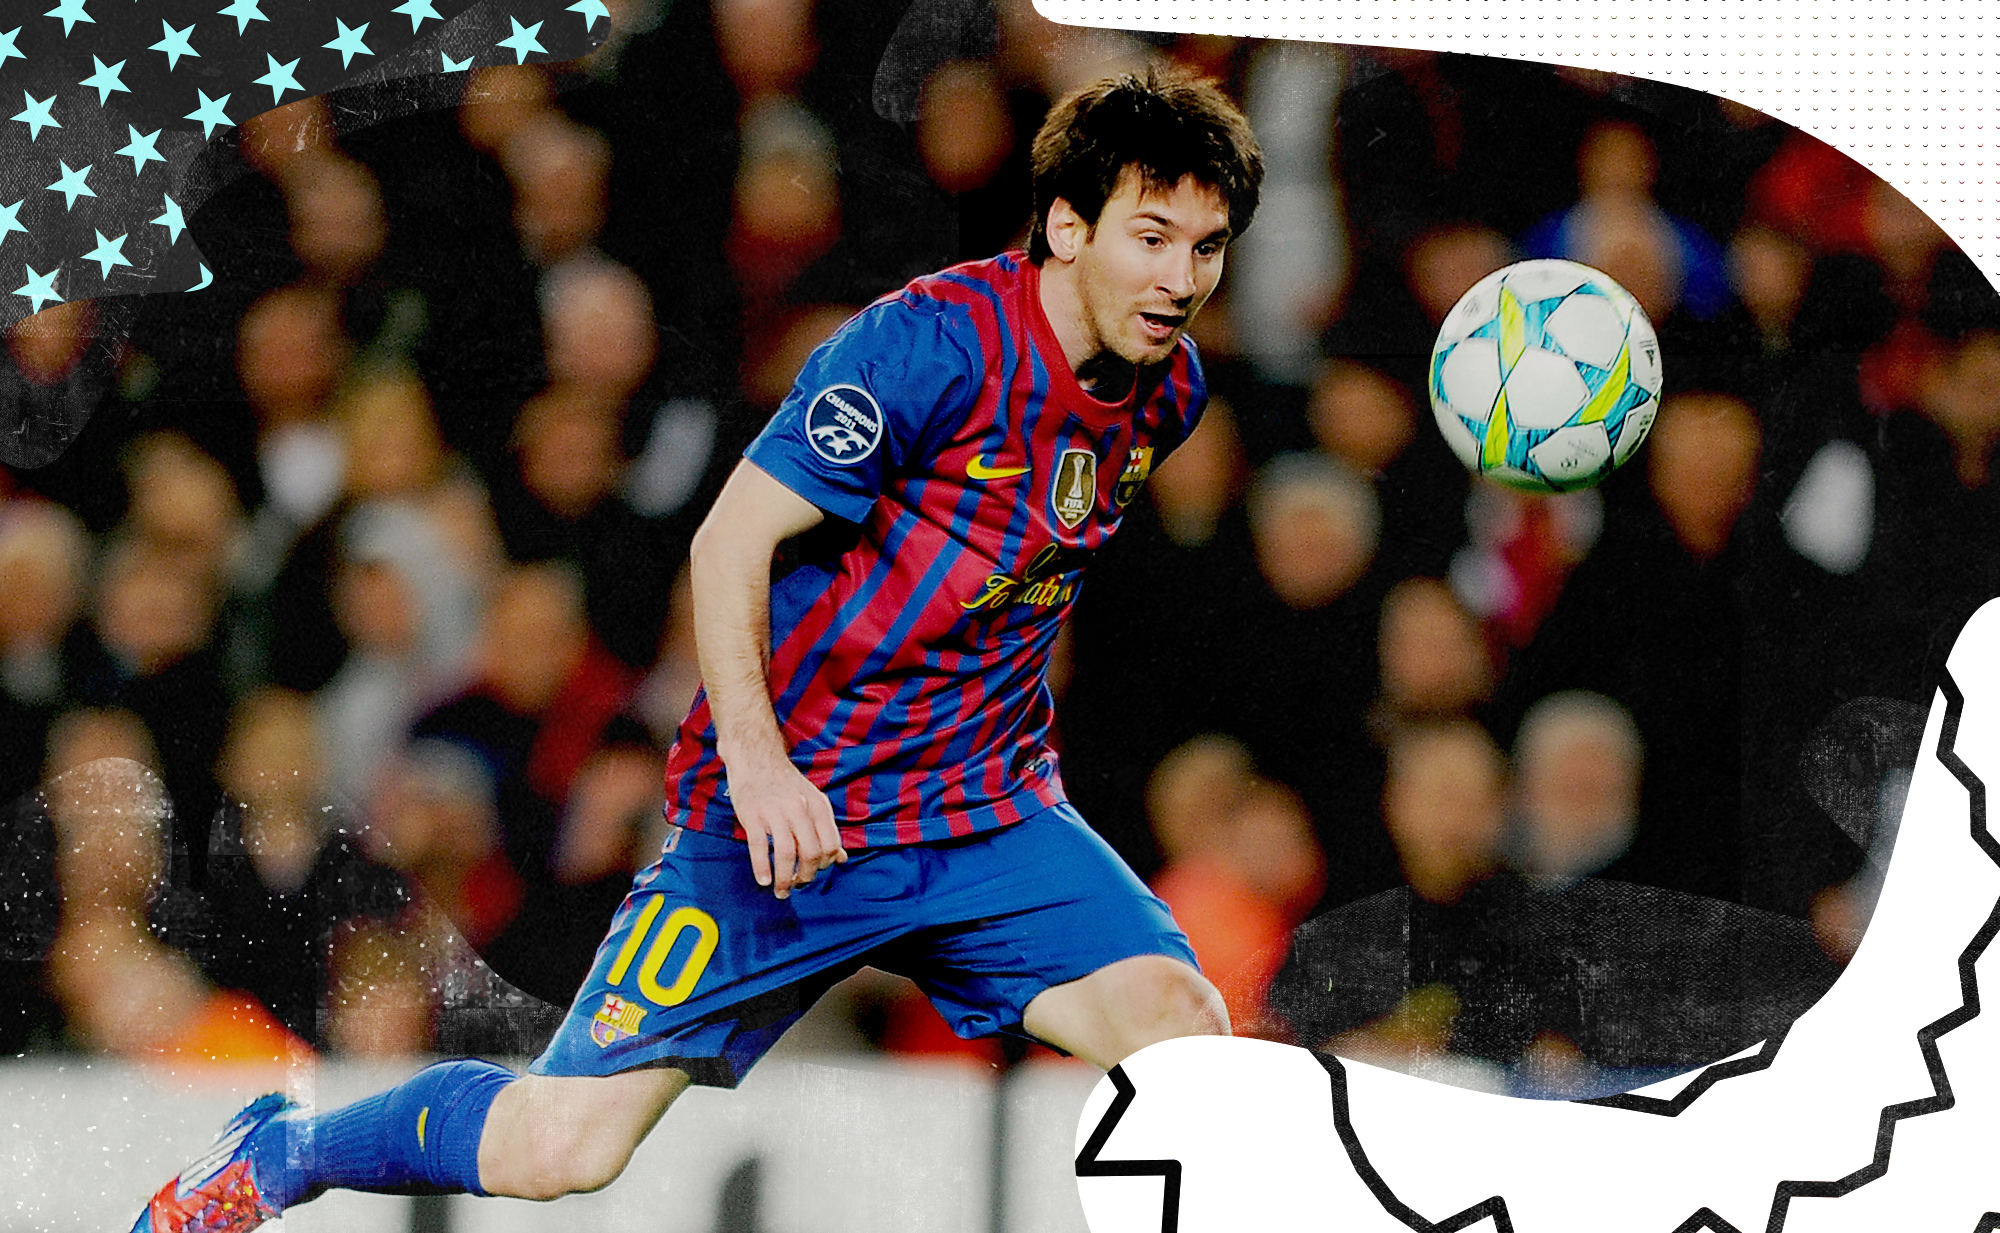 Messi in 2011 chasing a juggling soccer ball against Leverkusen.